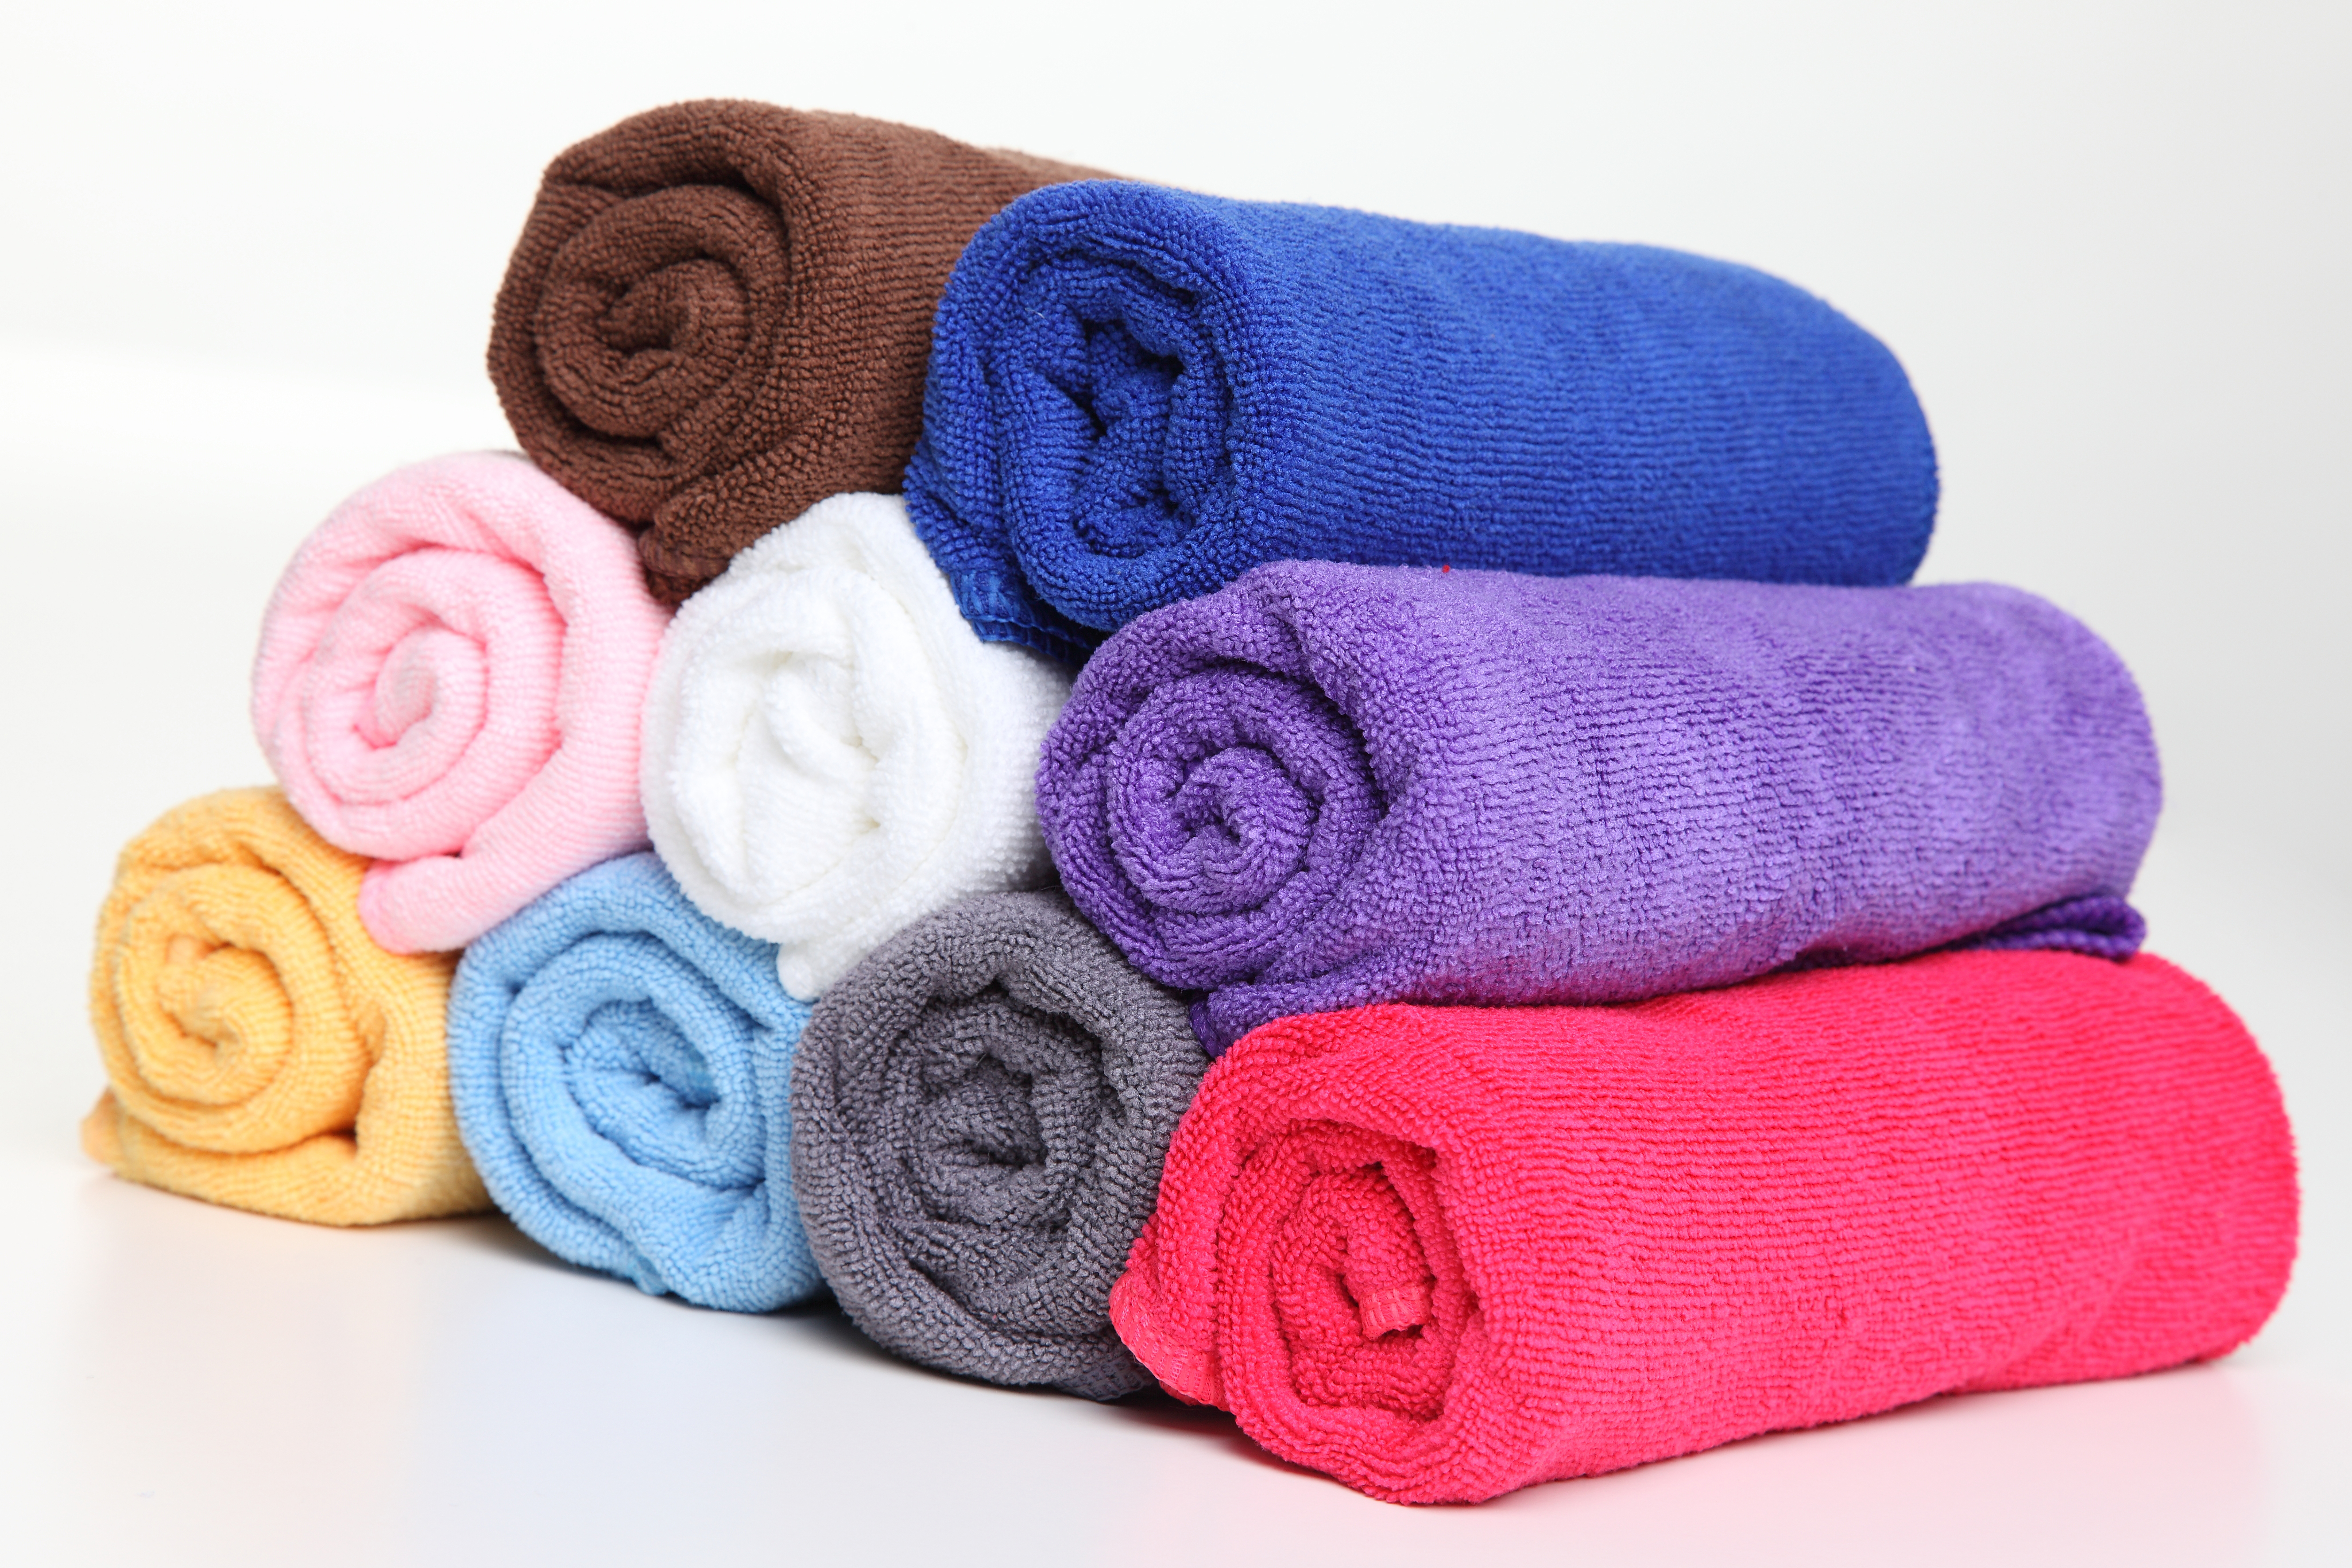 Piece dyed towels in any colour.